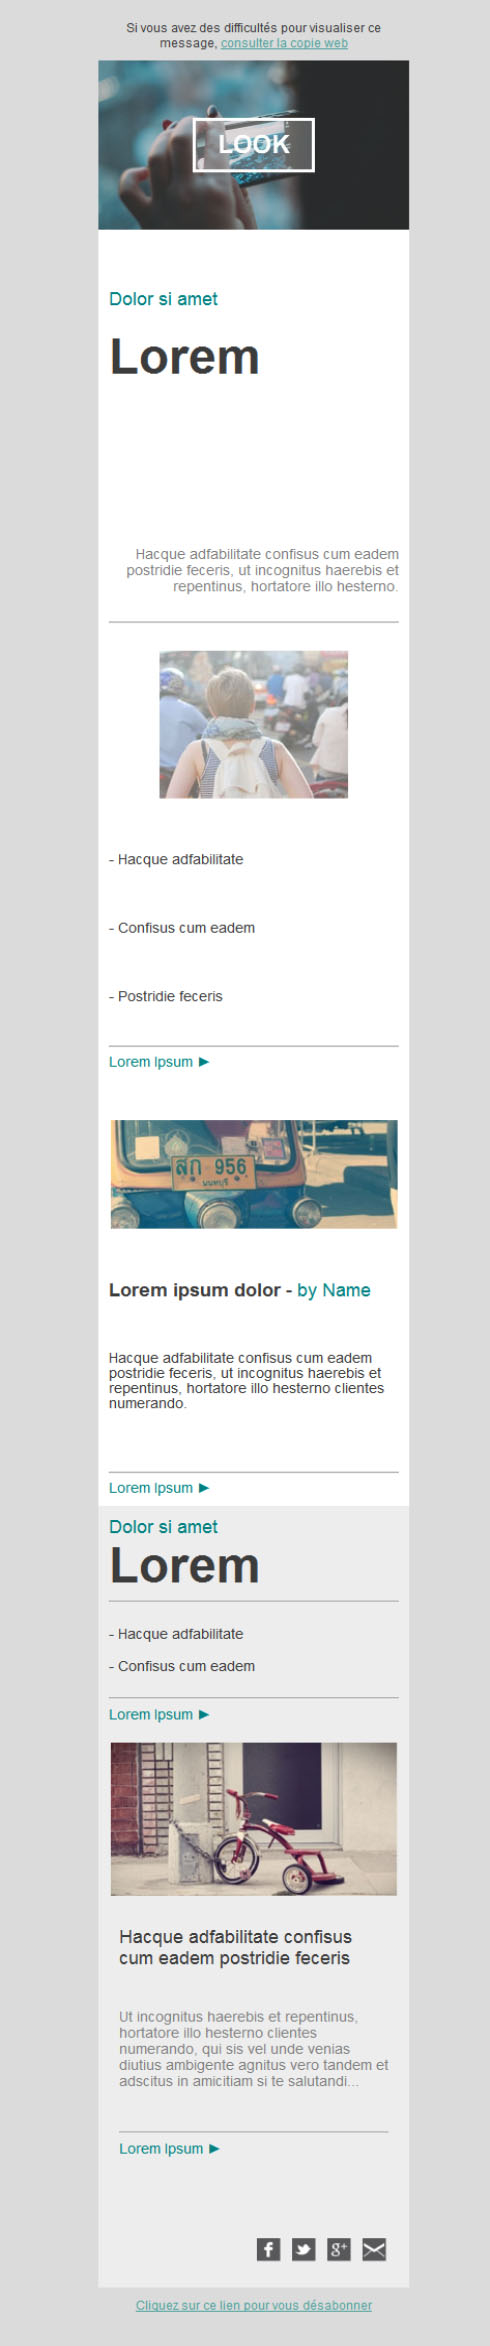 Templates Emailing Look Sarbacane